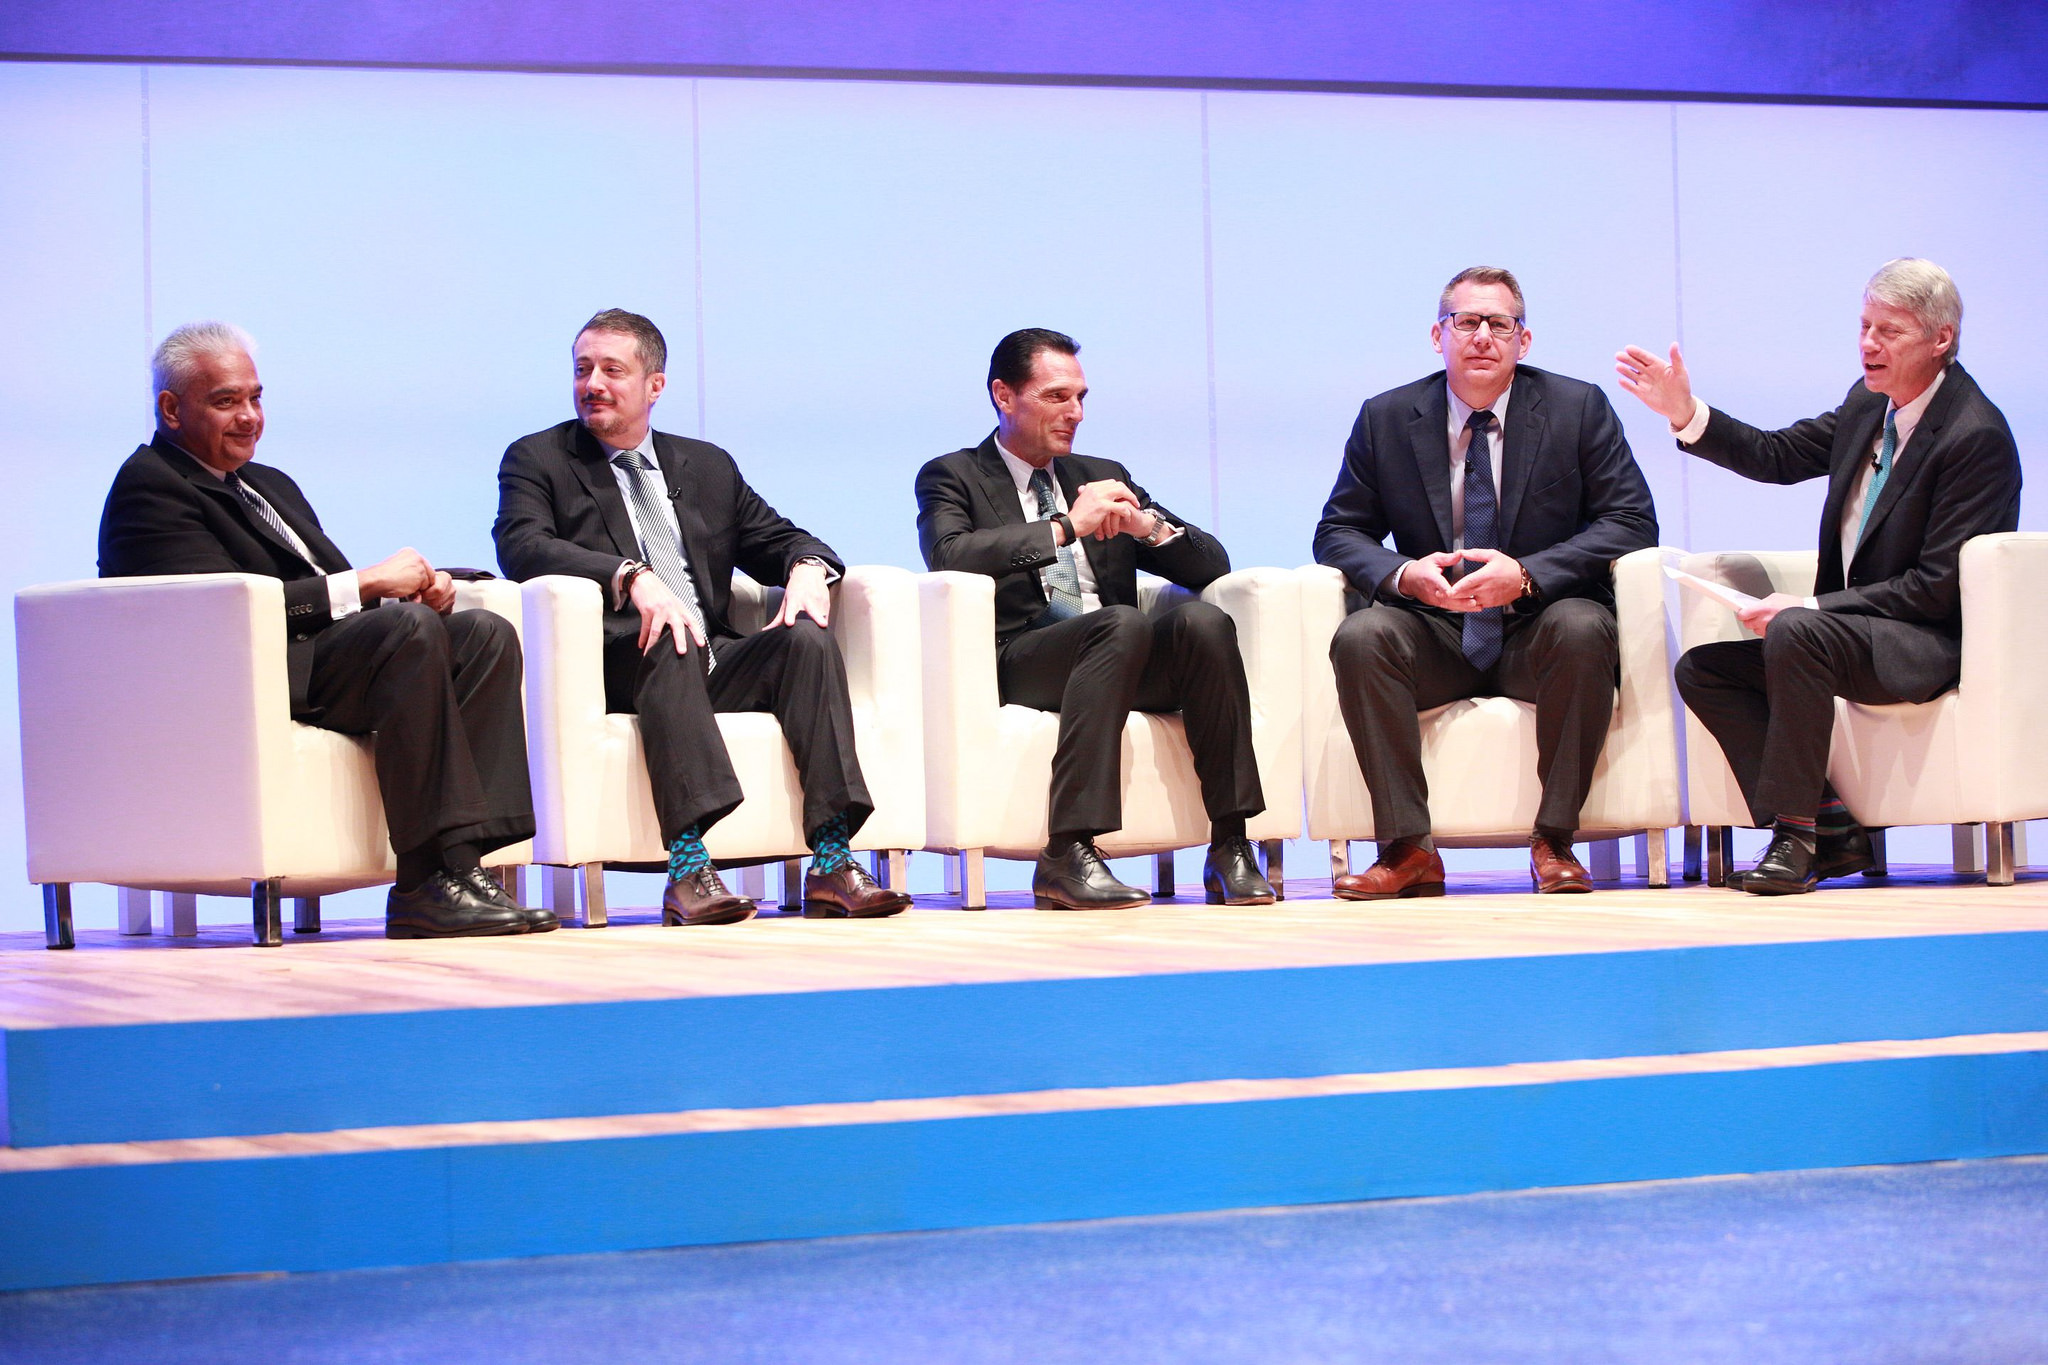 Rakesh Sarna, Managing Director & CEO, Indian Hotels Company LTD; Jeffrey C Rutledge, Chief Executive Officer, AIG Travel; Peter Fankhauser, Group CEO, Thomas Cook Group; Robert A. Jensen, CEO, Kenyon International Emergency Services; Nick Ross, Moderator - WTTC